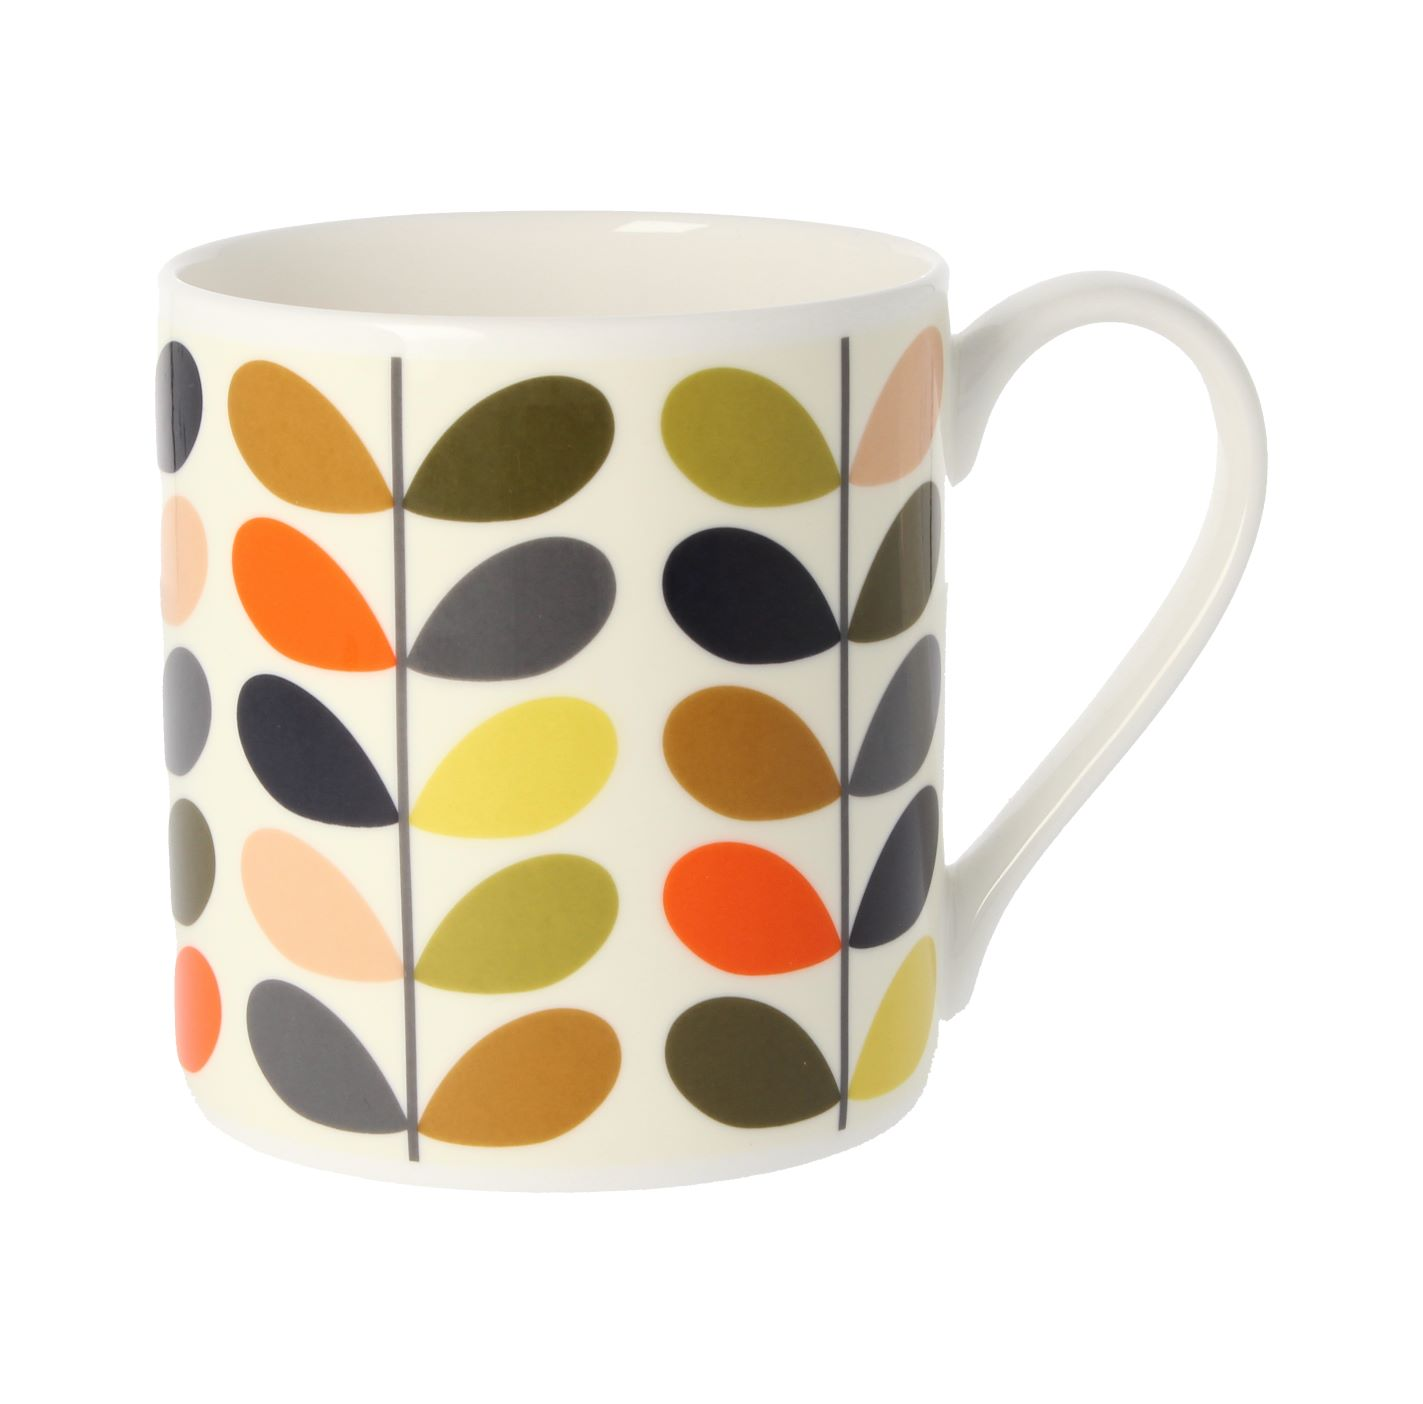 A classic leaves design on one of the Orla Kiely mugs.